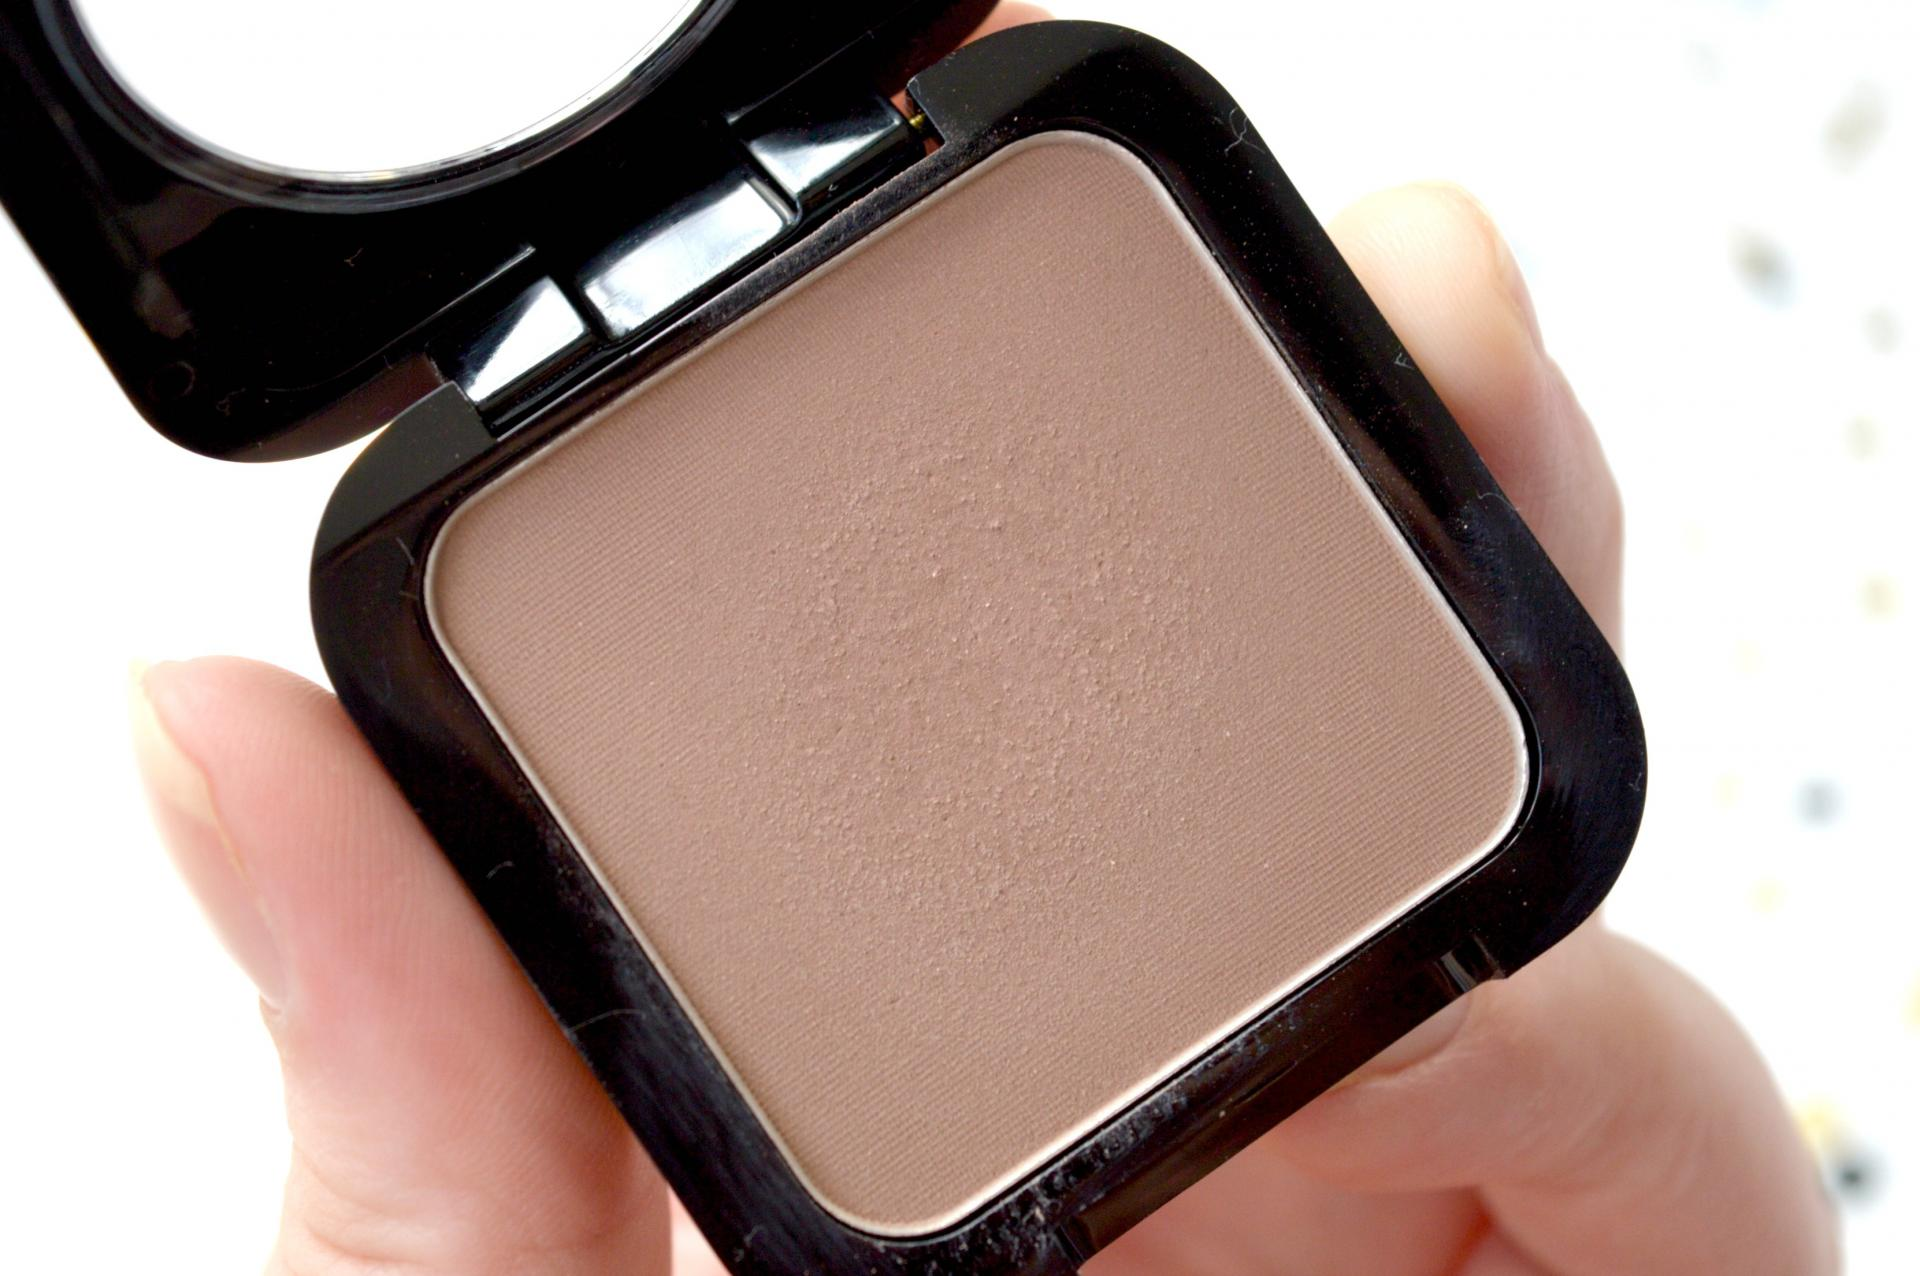 Is The NYX Taupe Blush Good For Pale Skin?